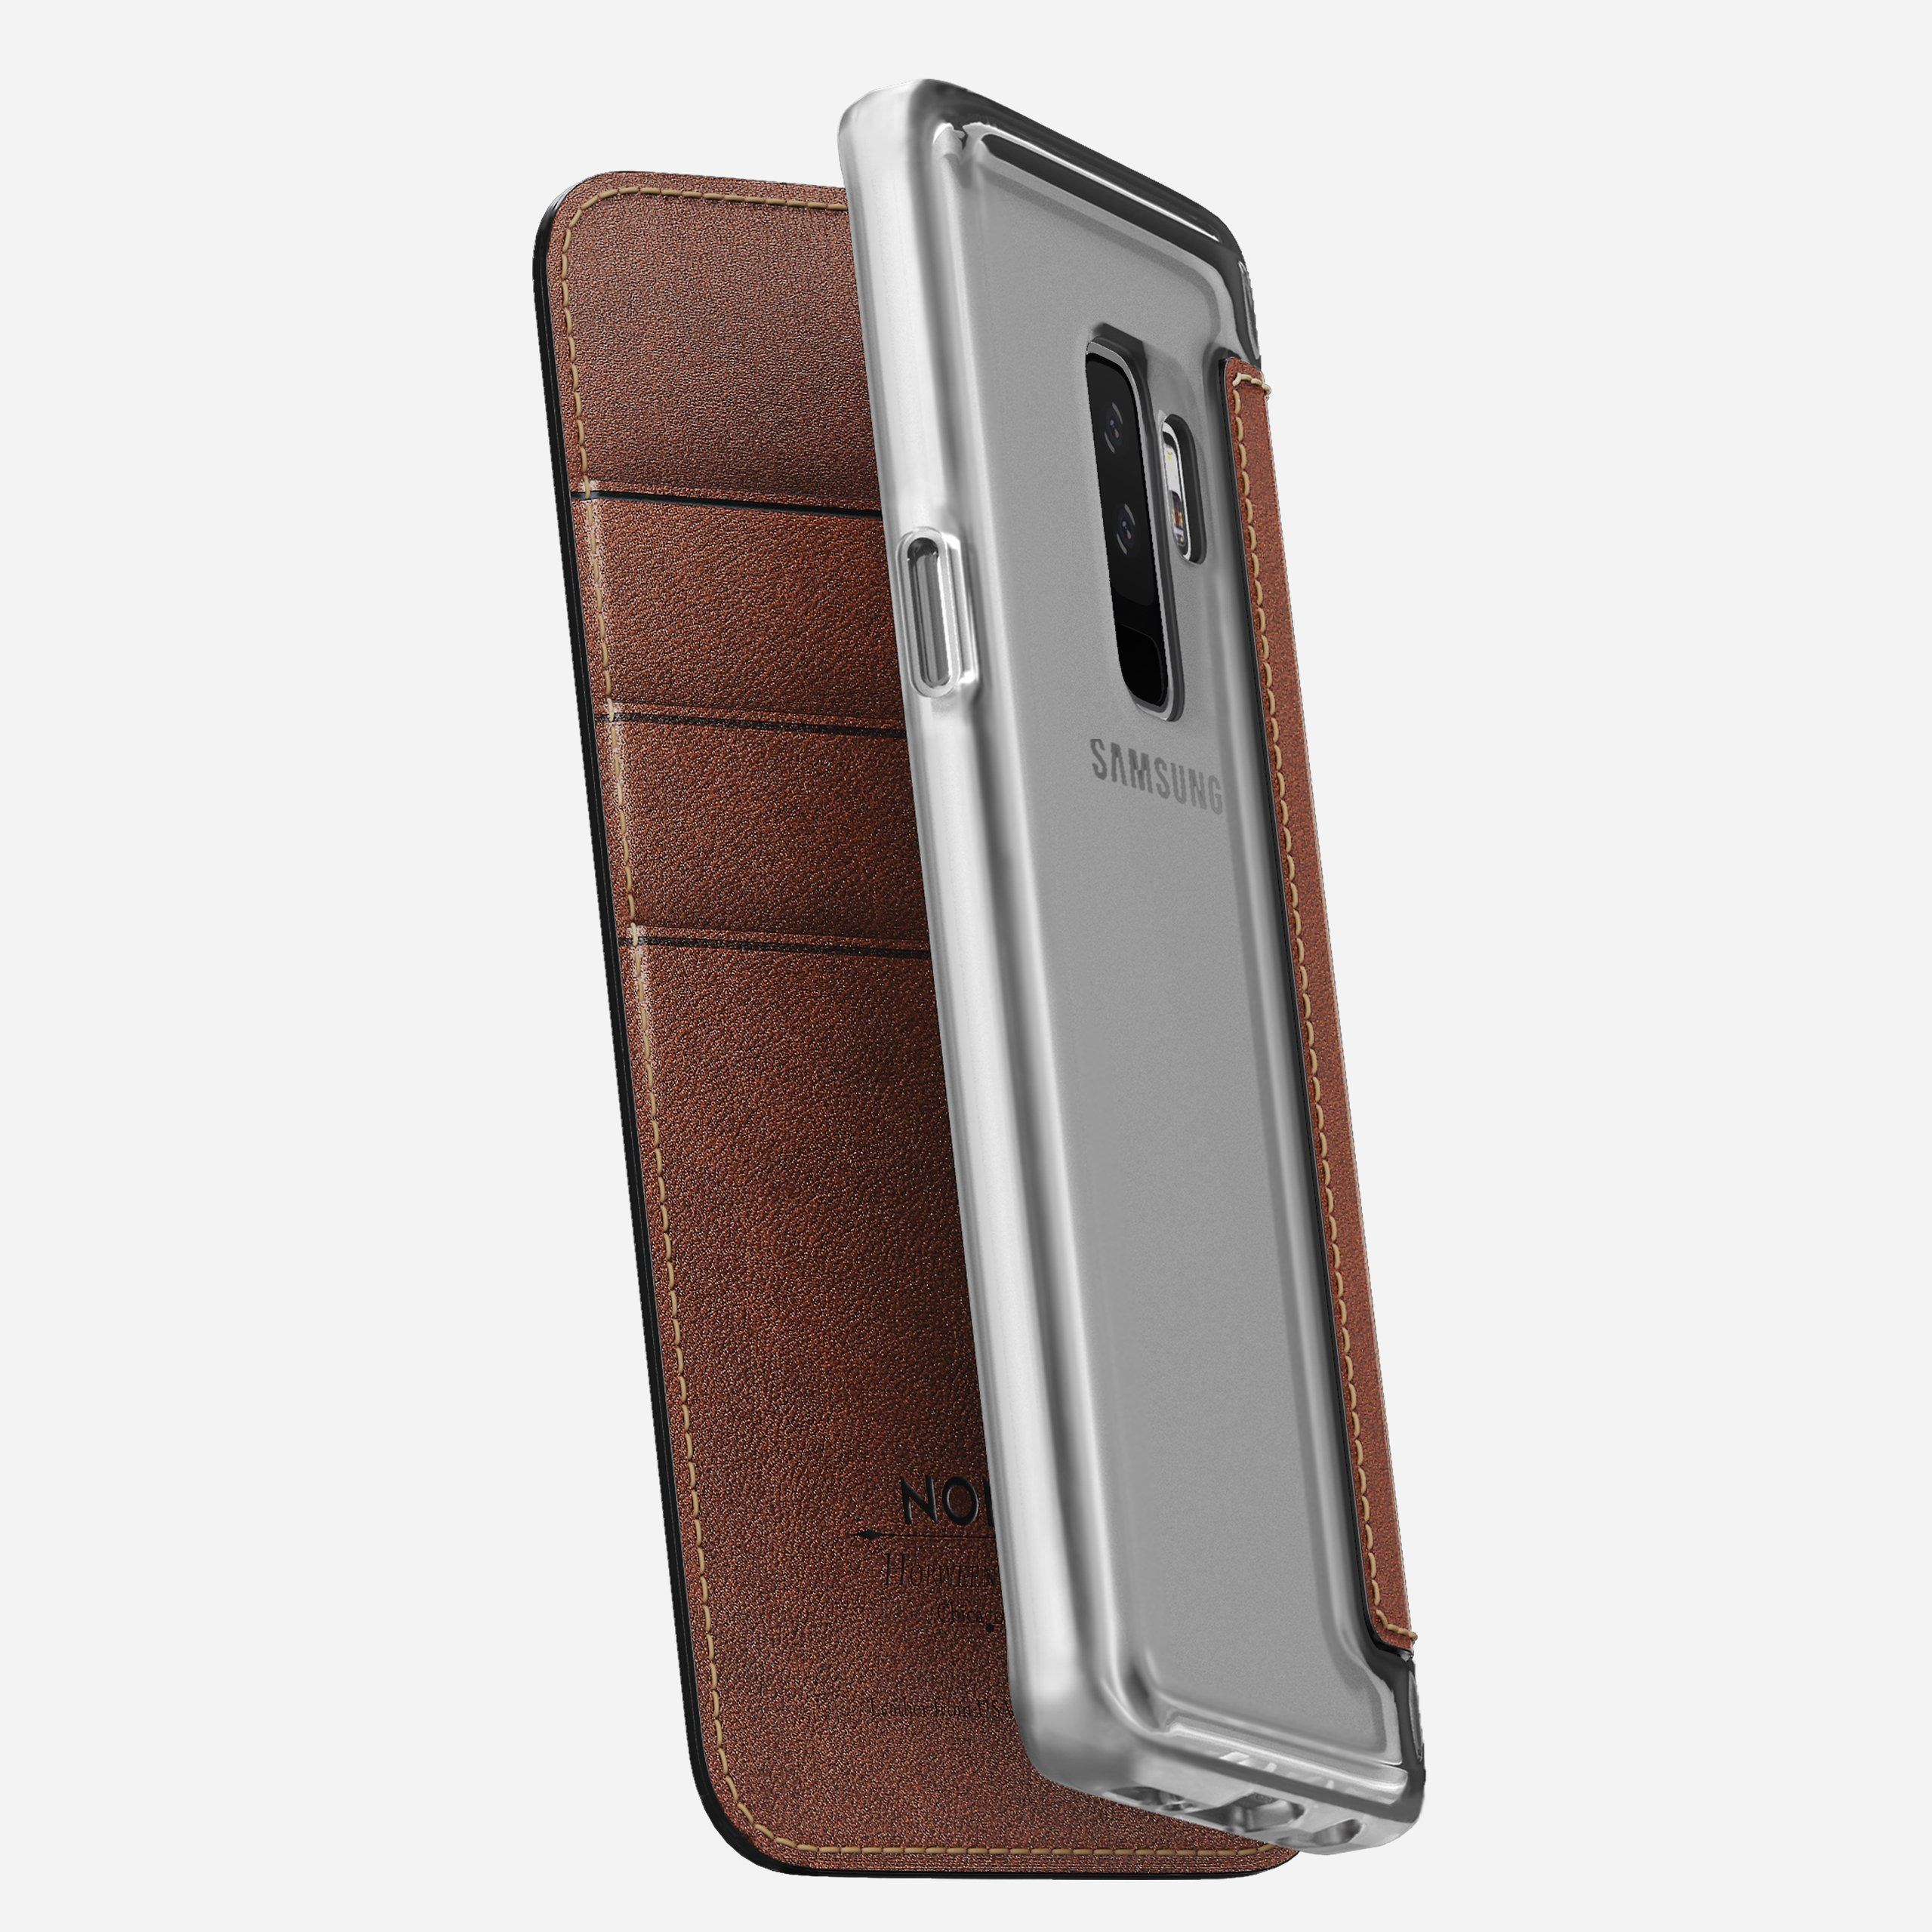 Nomad Clear Folio for Samsung S9 Plus - Image 2